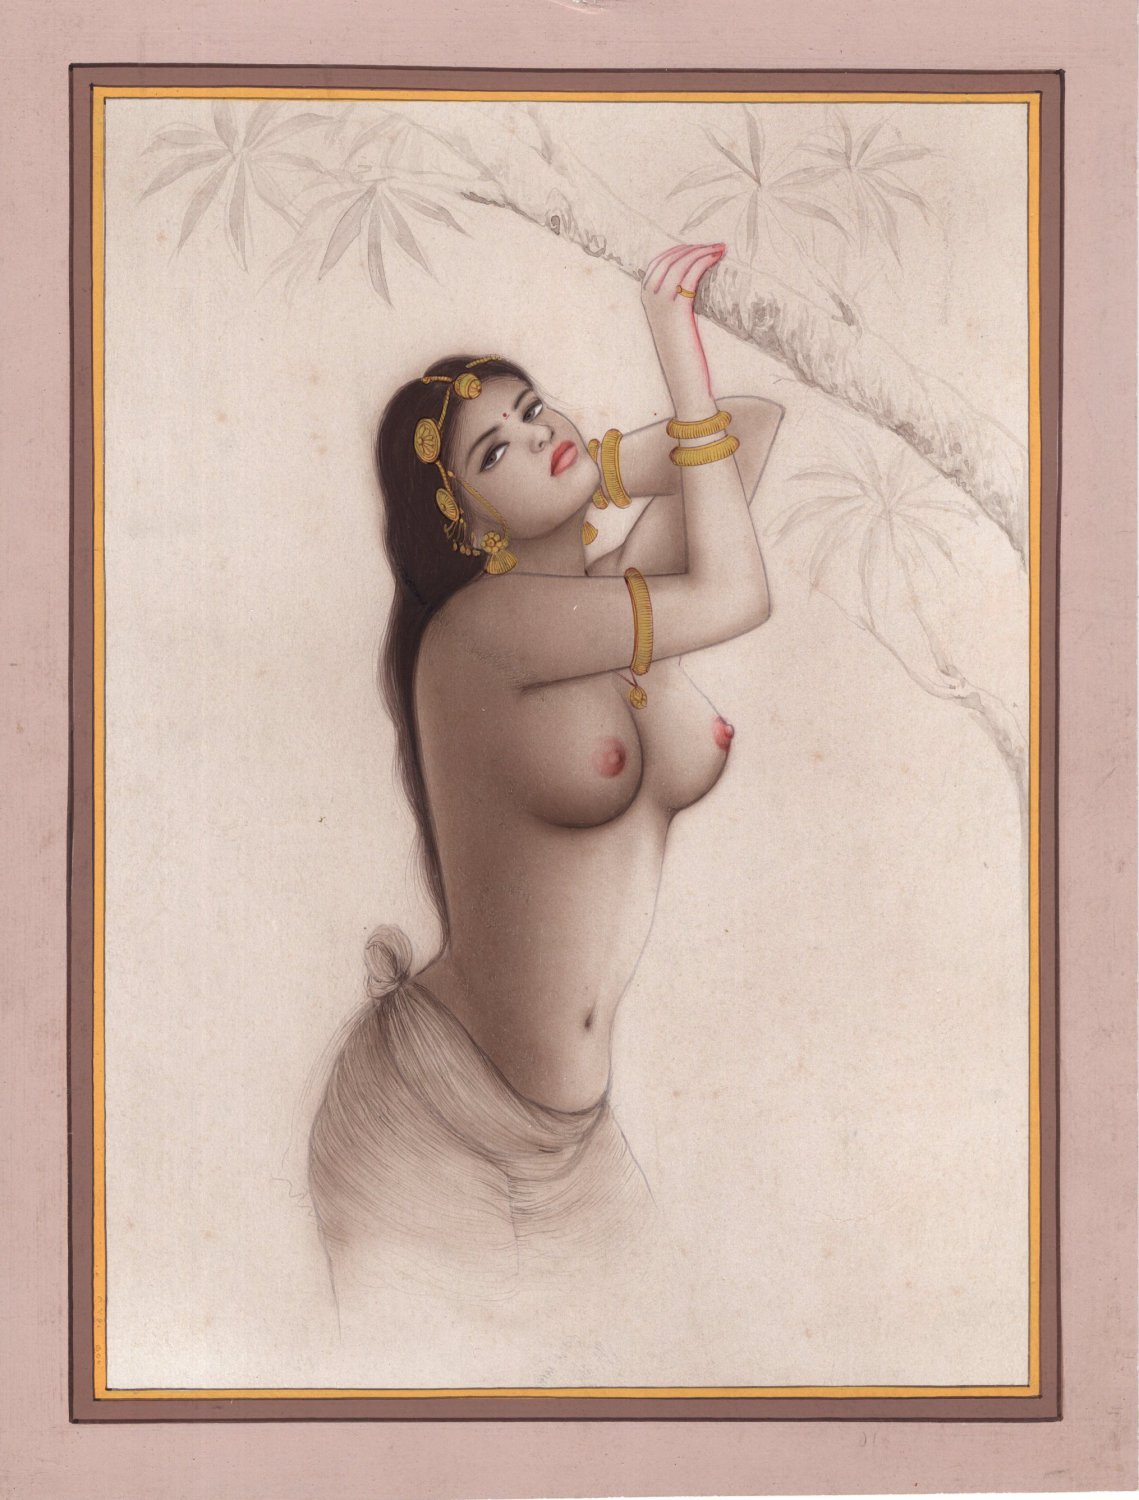 Indian Miniature Semi Nude Portrait Painting Handmade Erotic Decor Ethnic Art